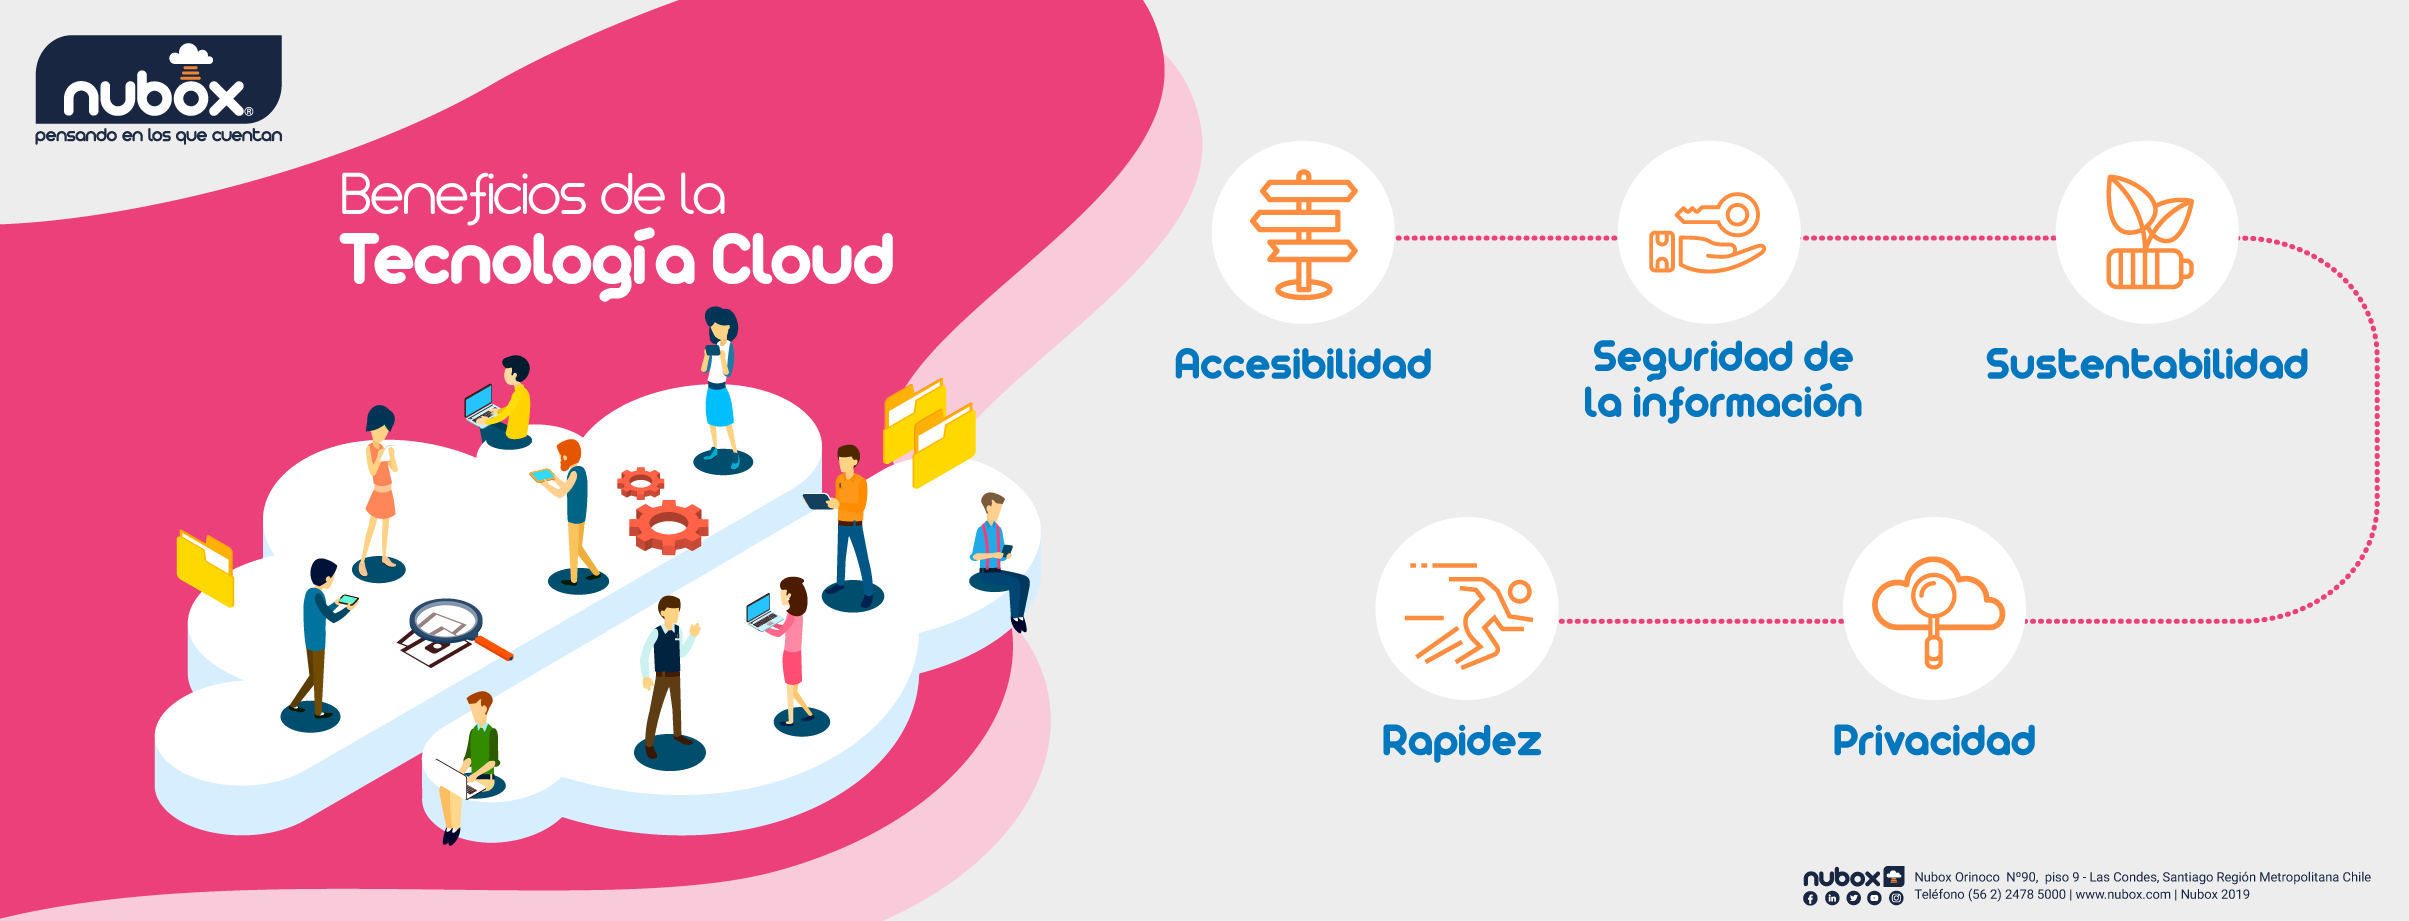 beneficios-tecnologia-cloud